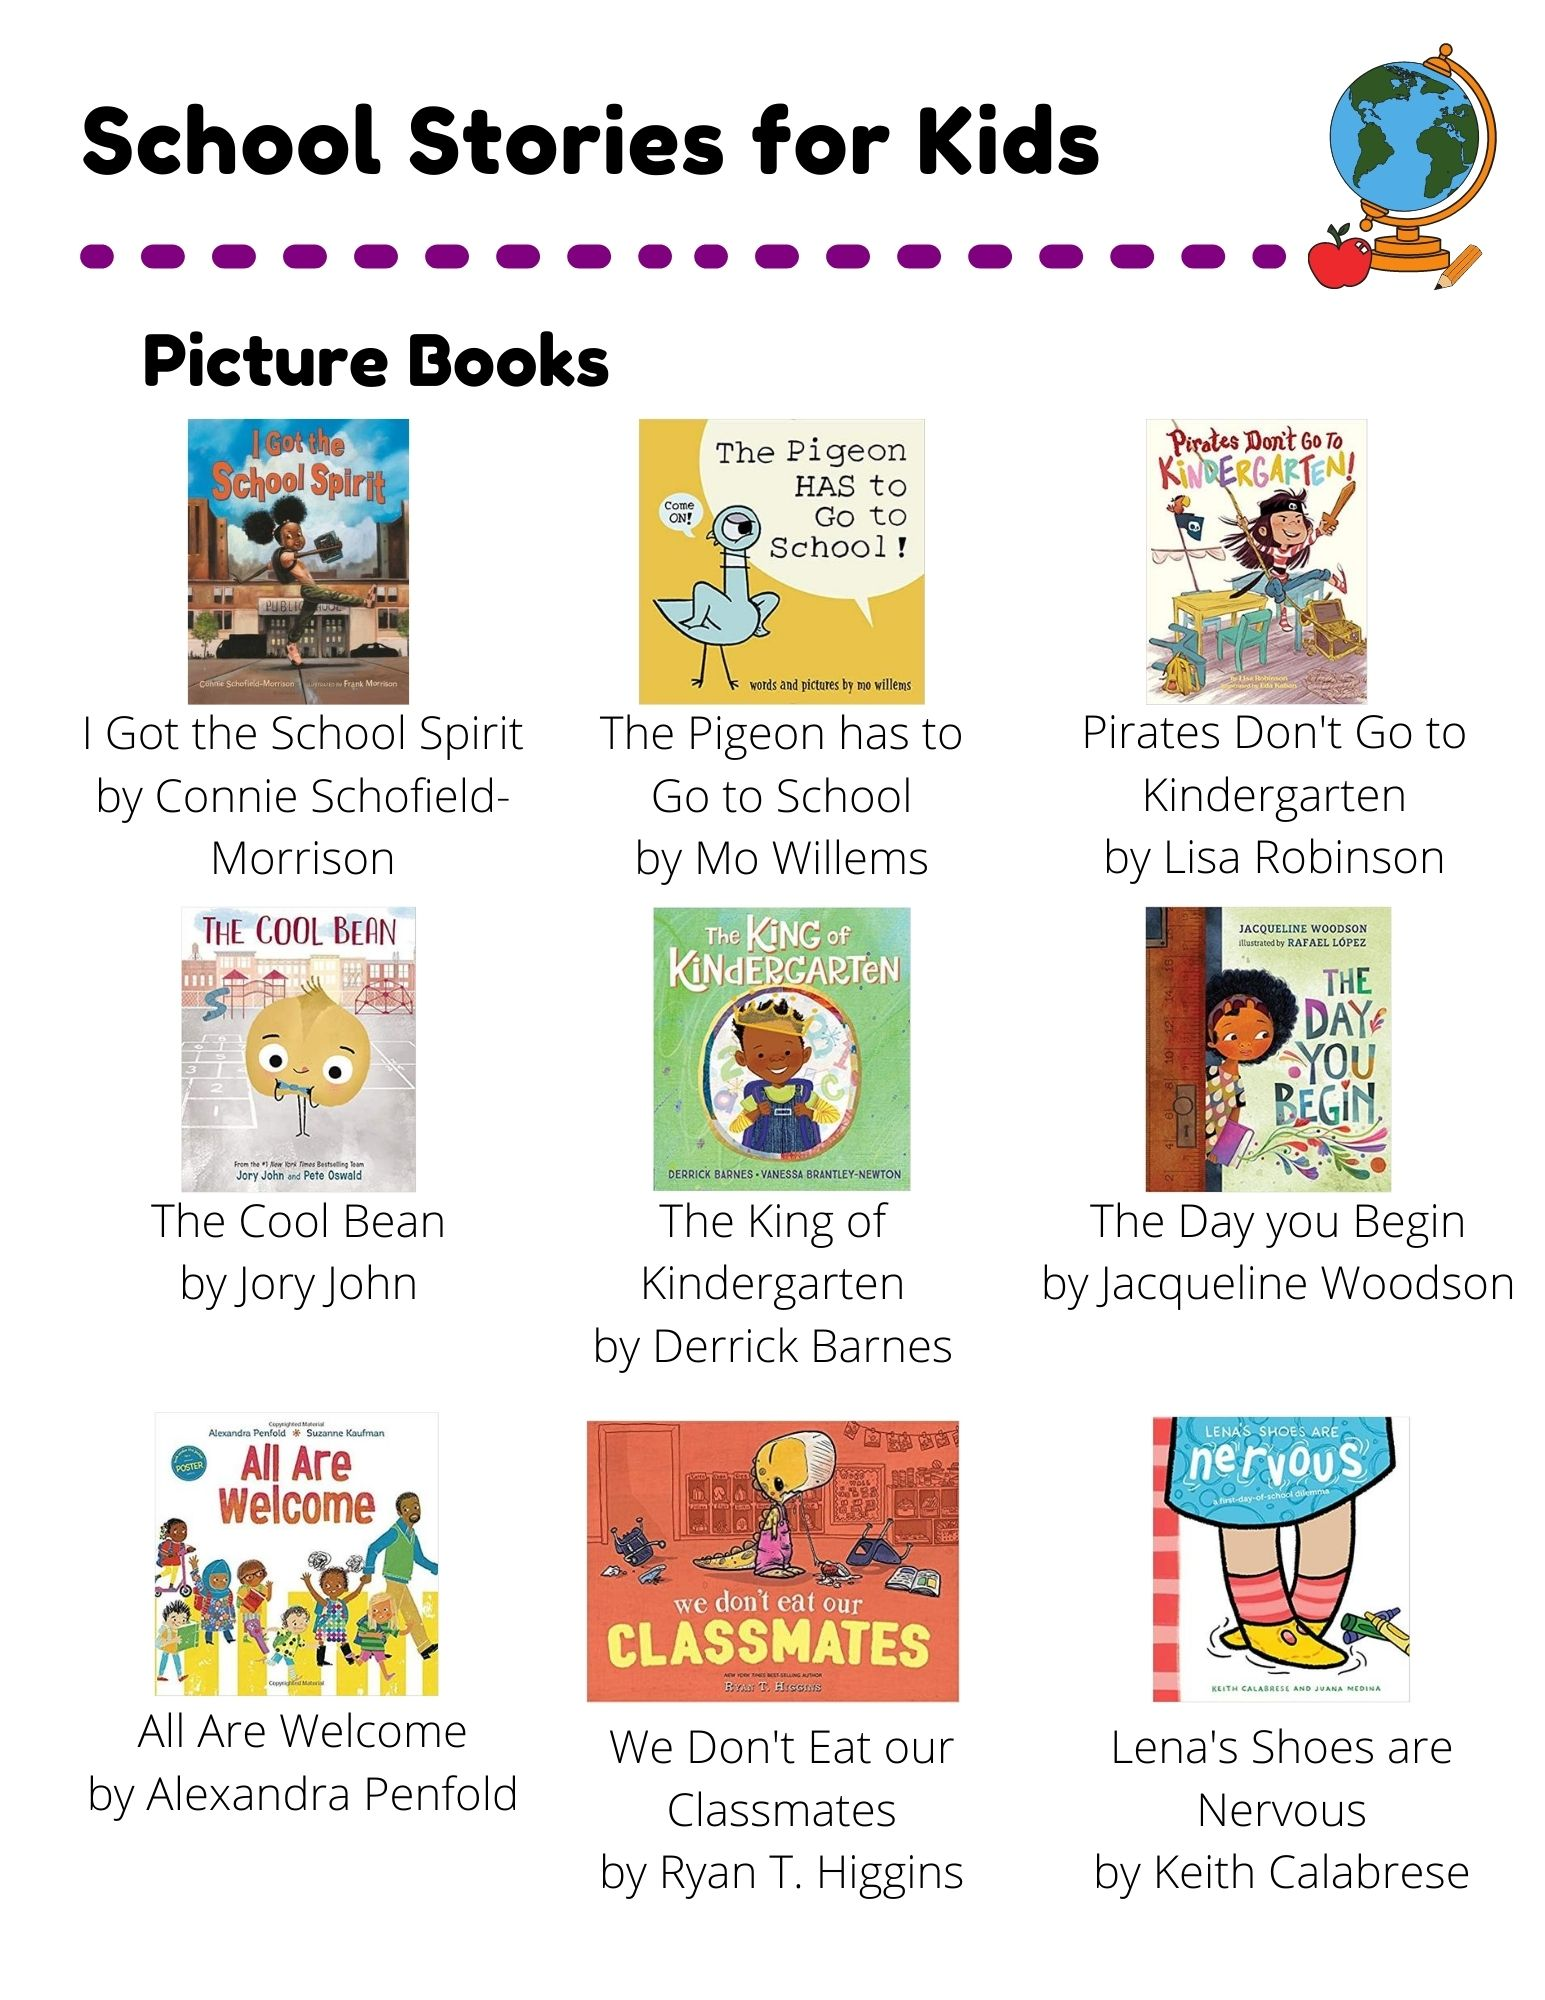 School Stories: Picture Books: I Got the School Spirit by Connie Schofield-Morrison. The Pigeon has to Go to School by Mo Willems. Pirates Don't Go to Kindergarten by Lisa Robinson. The Cool Bean by Jory John. The King of Kindergarten by Derrick Barnes. The Day you Begin by Jacqueline Woodson. All Are Welcome by Alexandra Penfold. We Don't Eat our Classmates by Ryan T. Higgins. Lena's Shoes are Nervous by Keith Calabrese. Chapter Books: The Dunderheads by Paul Fleischman. Junie B. Jones:  First Grader (At Last) by Barbara Park. Bad Kitty:  School Daze by Nick Bruel. Ghosts by Raina Telgemeier. The First Rule of Punk by Celia C. Pérez. New Kid by Jerry Craft. Easy Readers: Too Cool for School by Kimberly Dean. School Rules by Victoria Kann. The Playground Problem by Margaret McNamara.